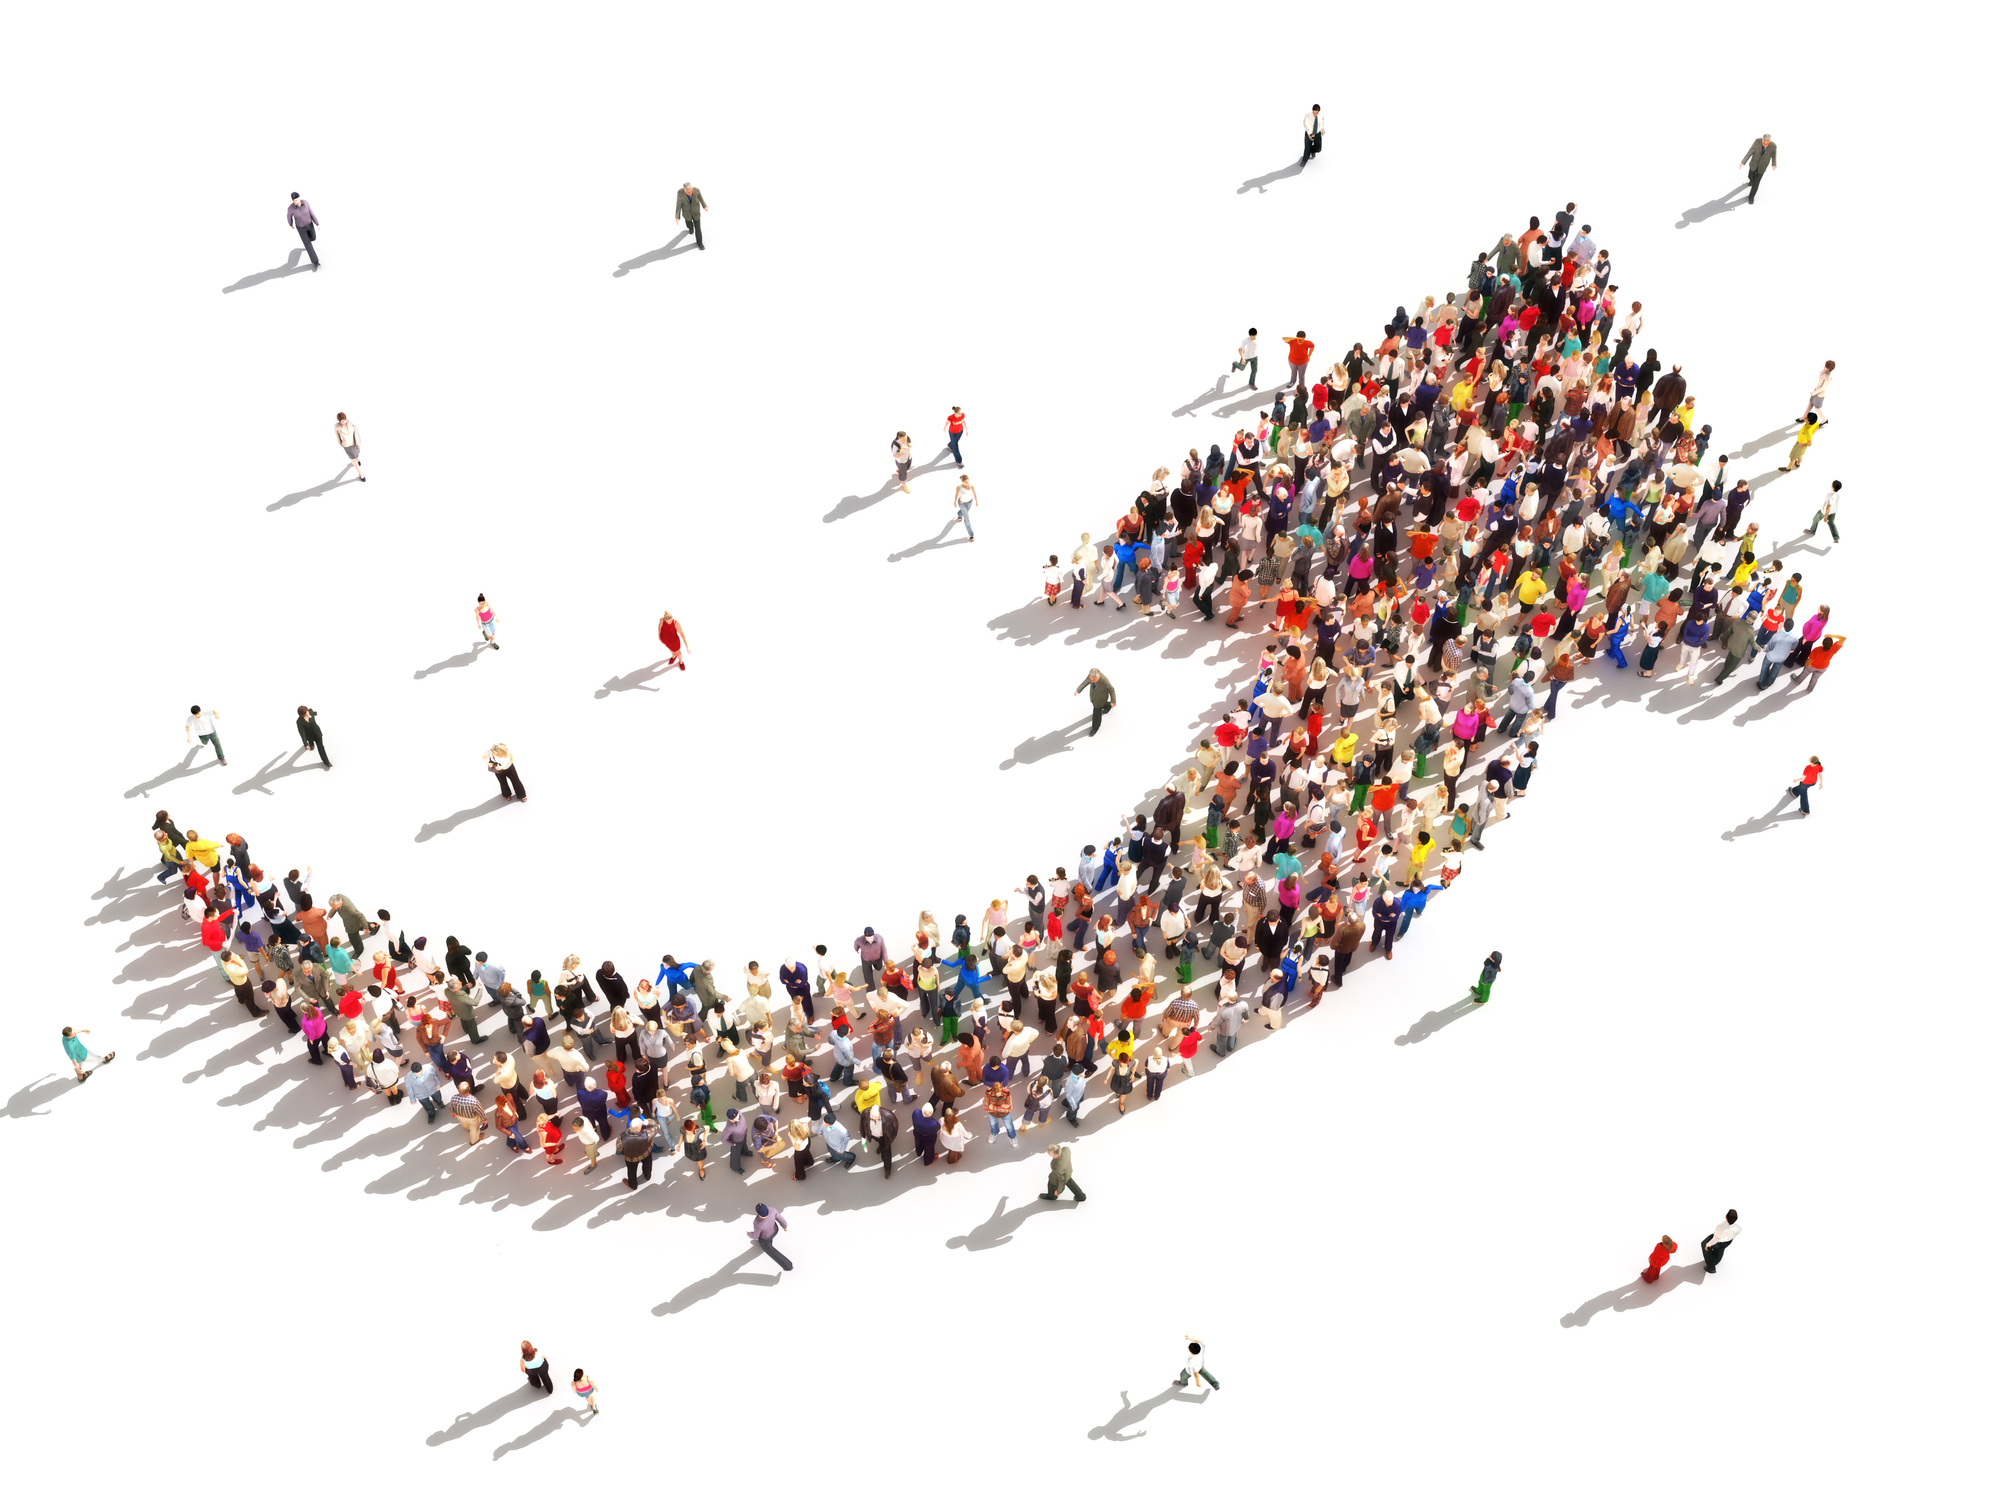 Illustration of people forming a giant arrow.